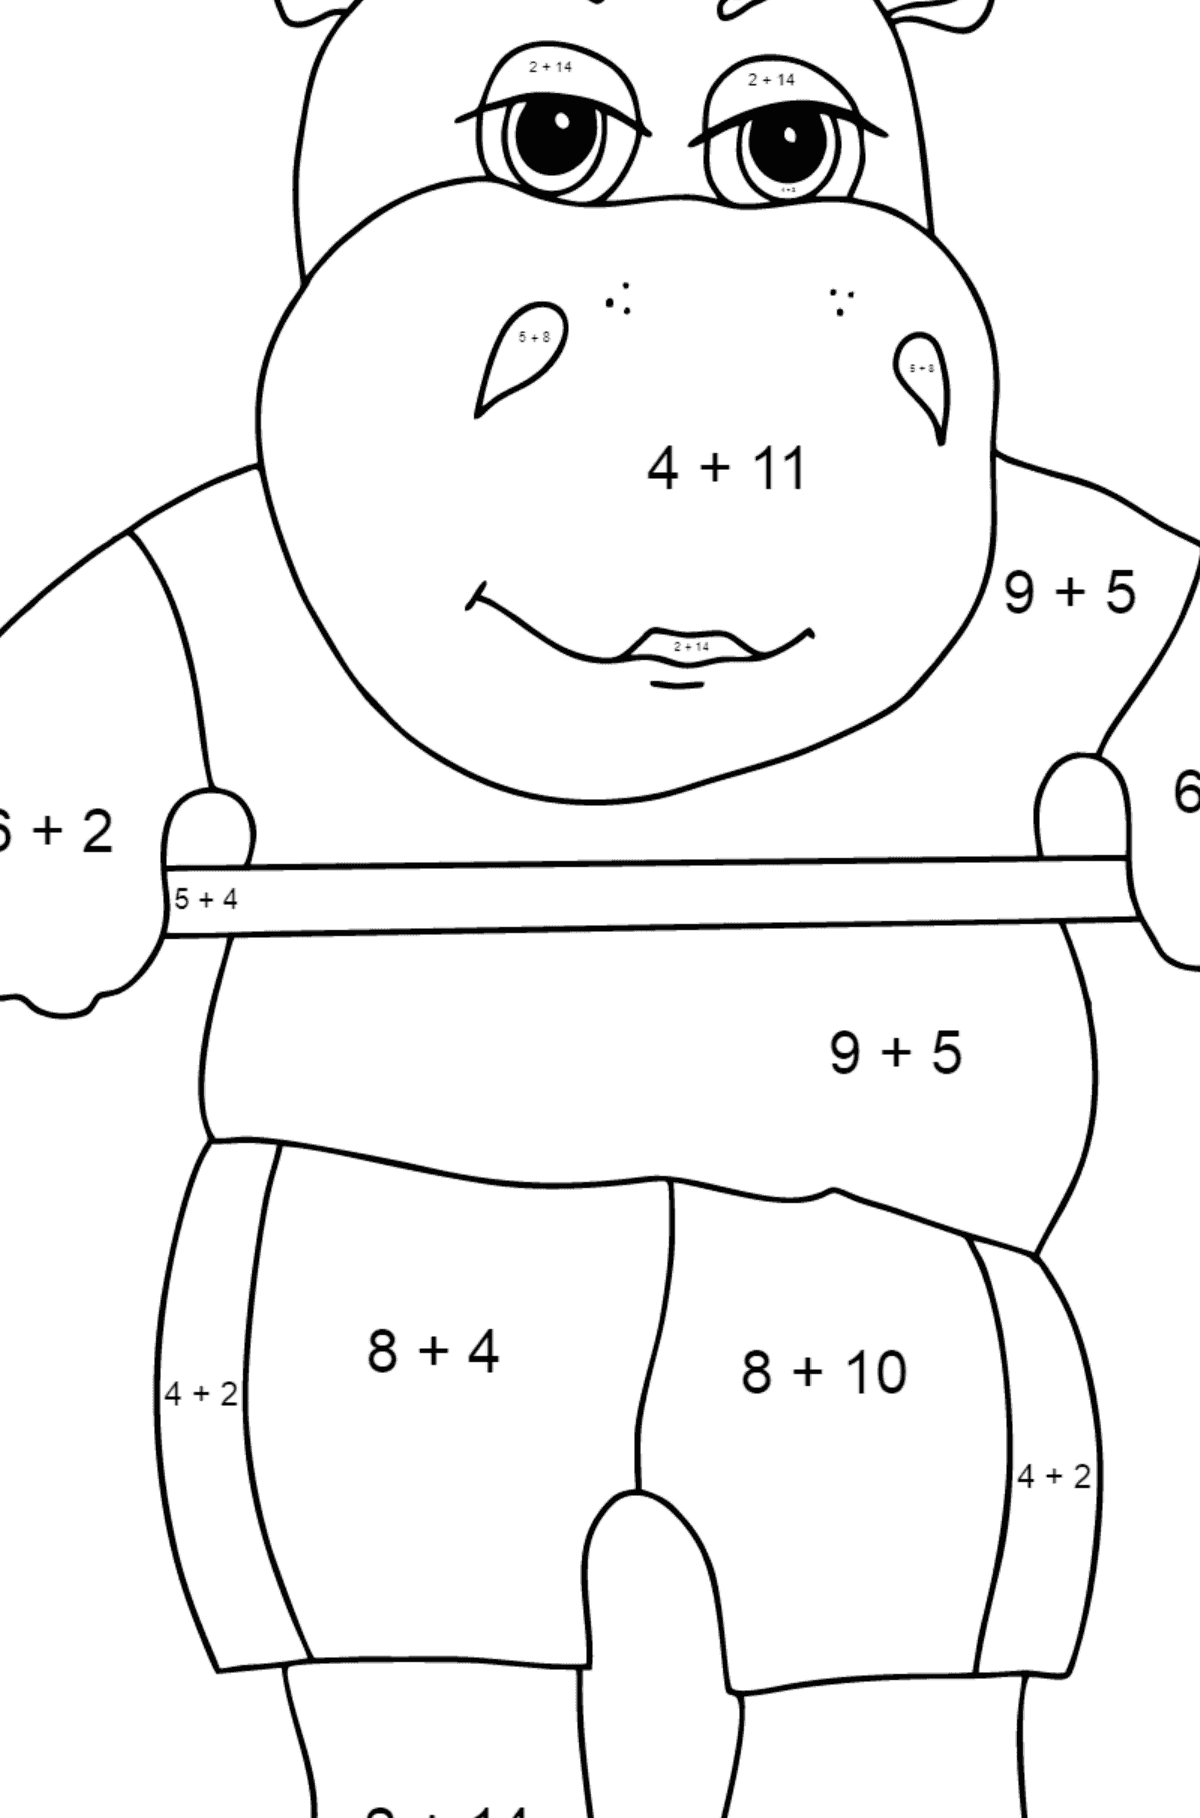 Coloring Page - A Hippo Lifts a Barbell for Children  - Color by Number Addition